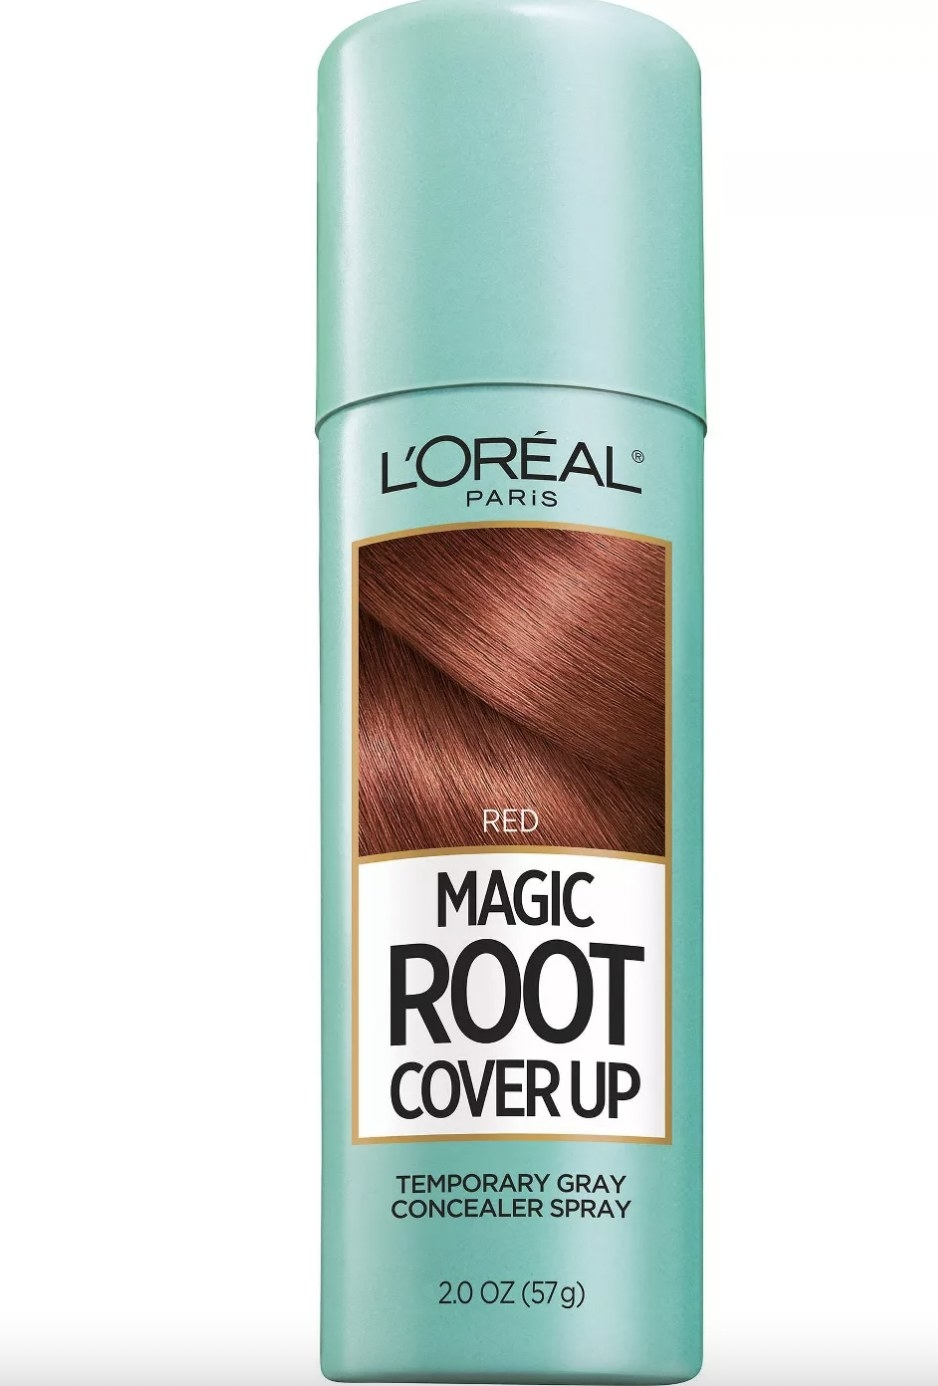 A can of hair color